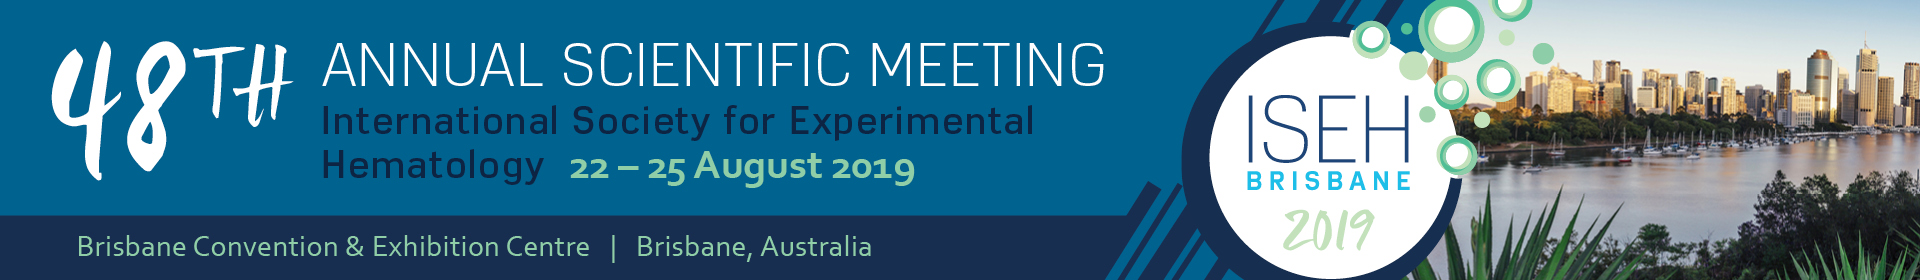 2019 Meeting Home - International Society for Experimental